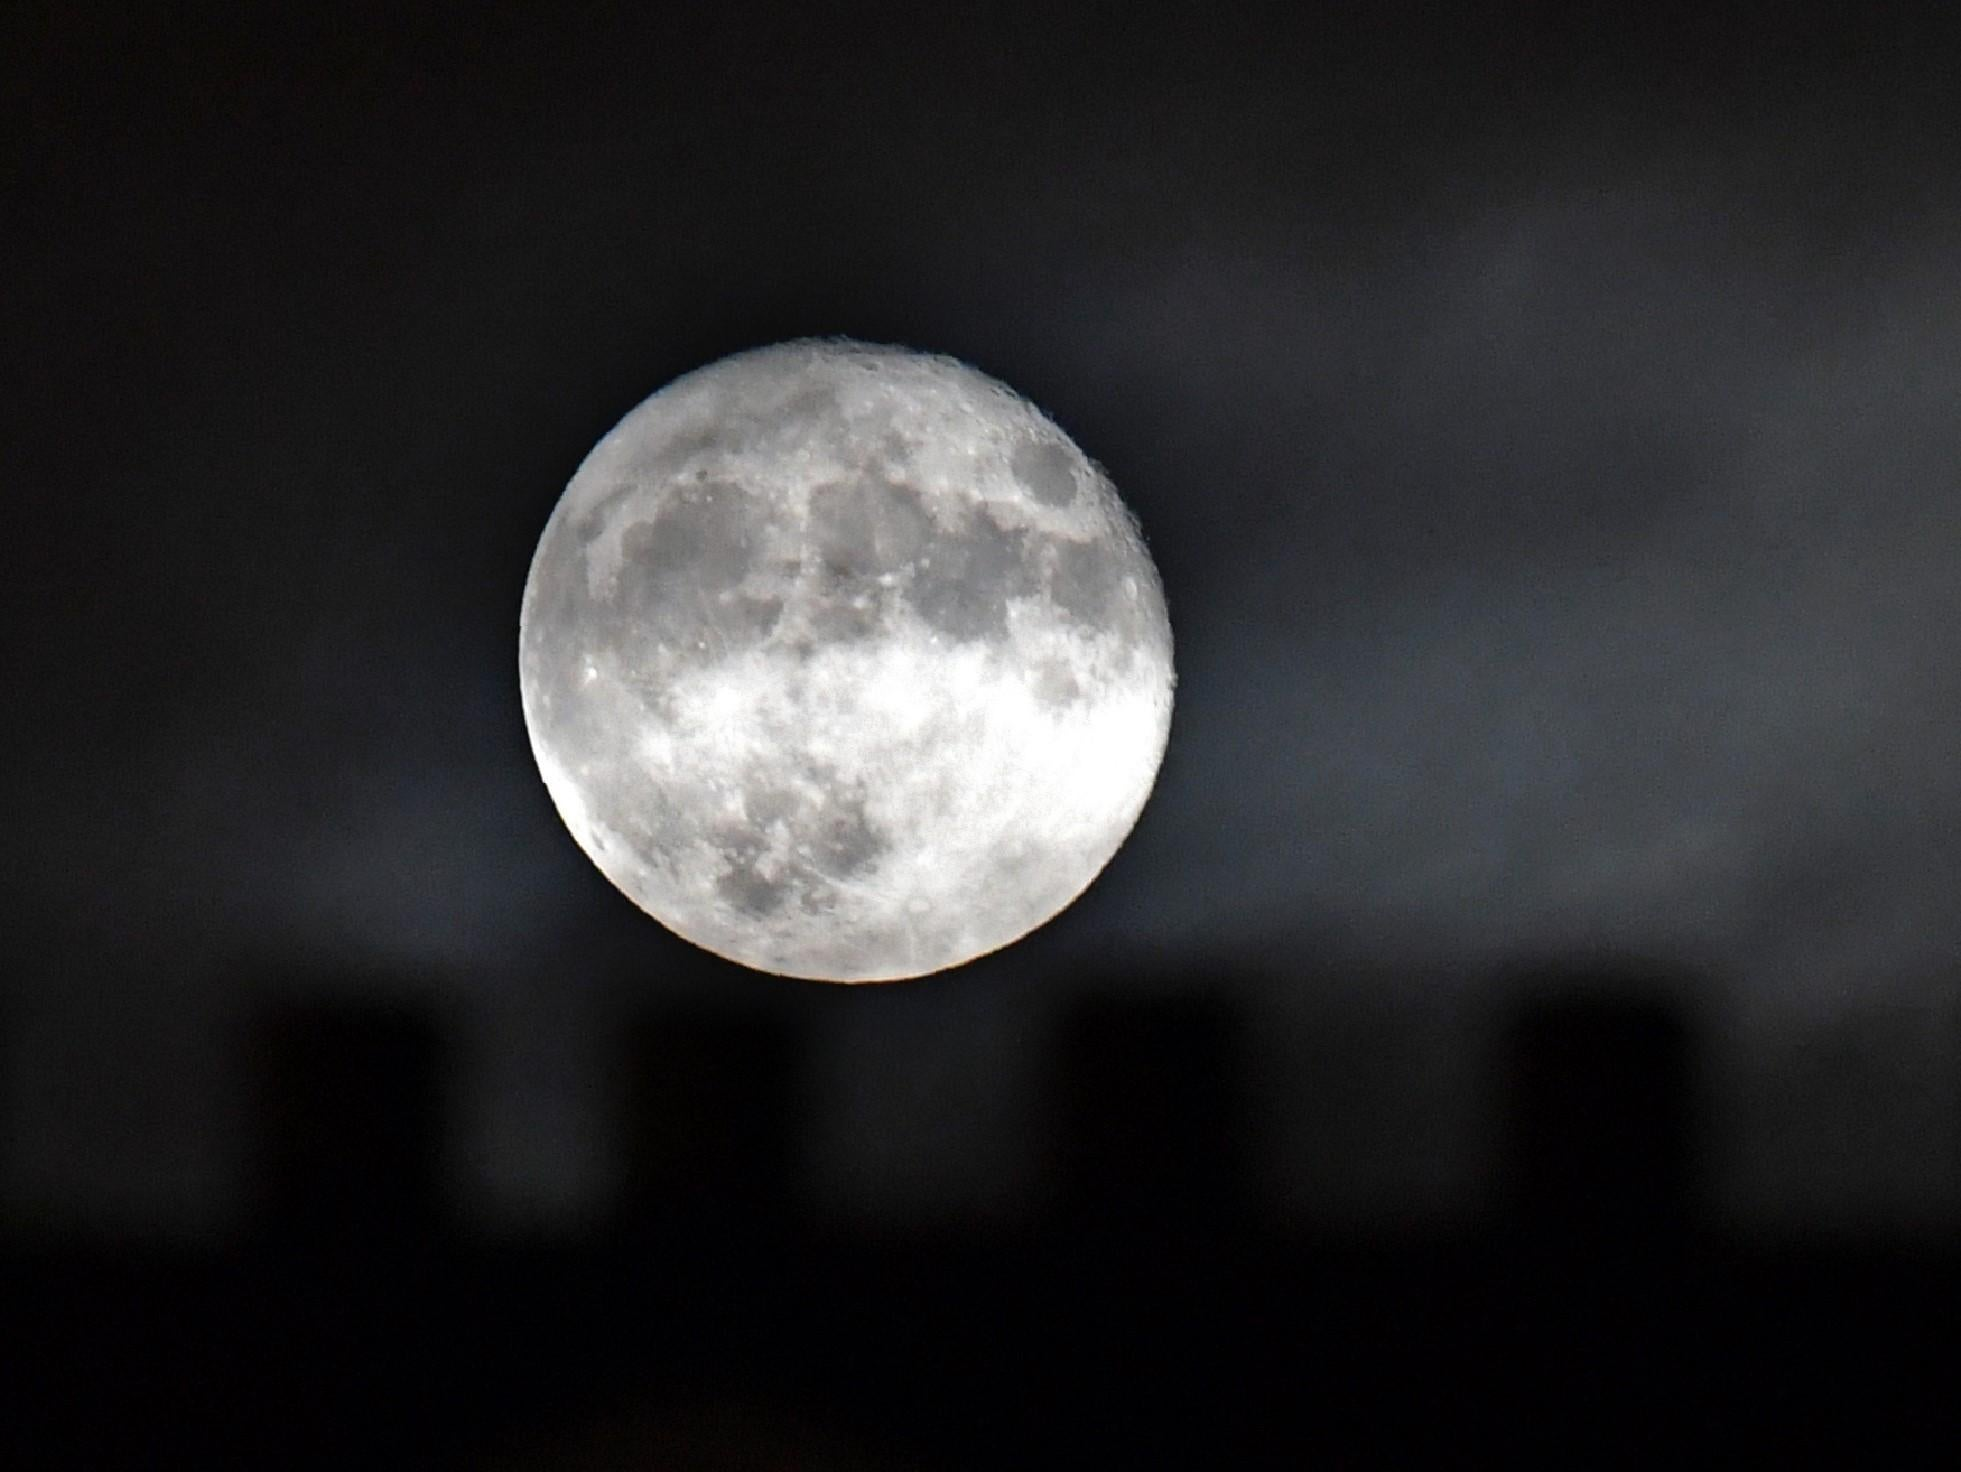 Flower full moon 2020: How to watch the final supermoon of the year next month - The Independent